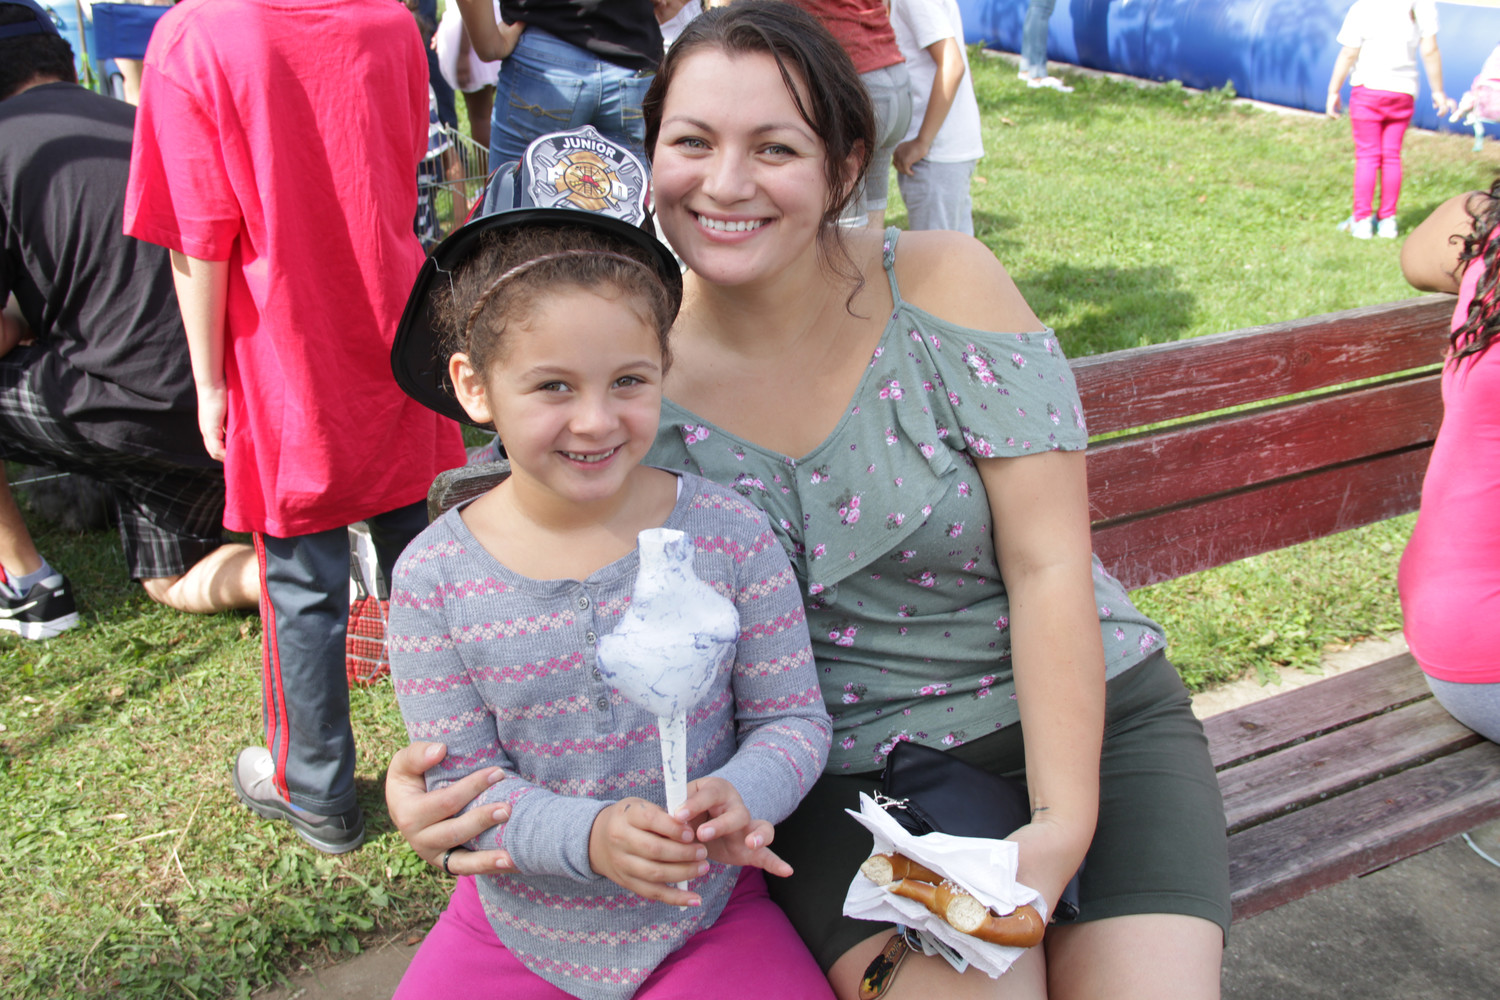 Karissa Lazo, 7, and her mom Yolonda Lazo enjoyed cotton candy and a soft pretzel during the Freeport Memorial Library Fall Festival on Oct. 7.